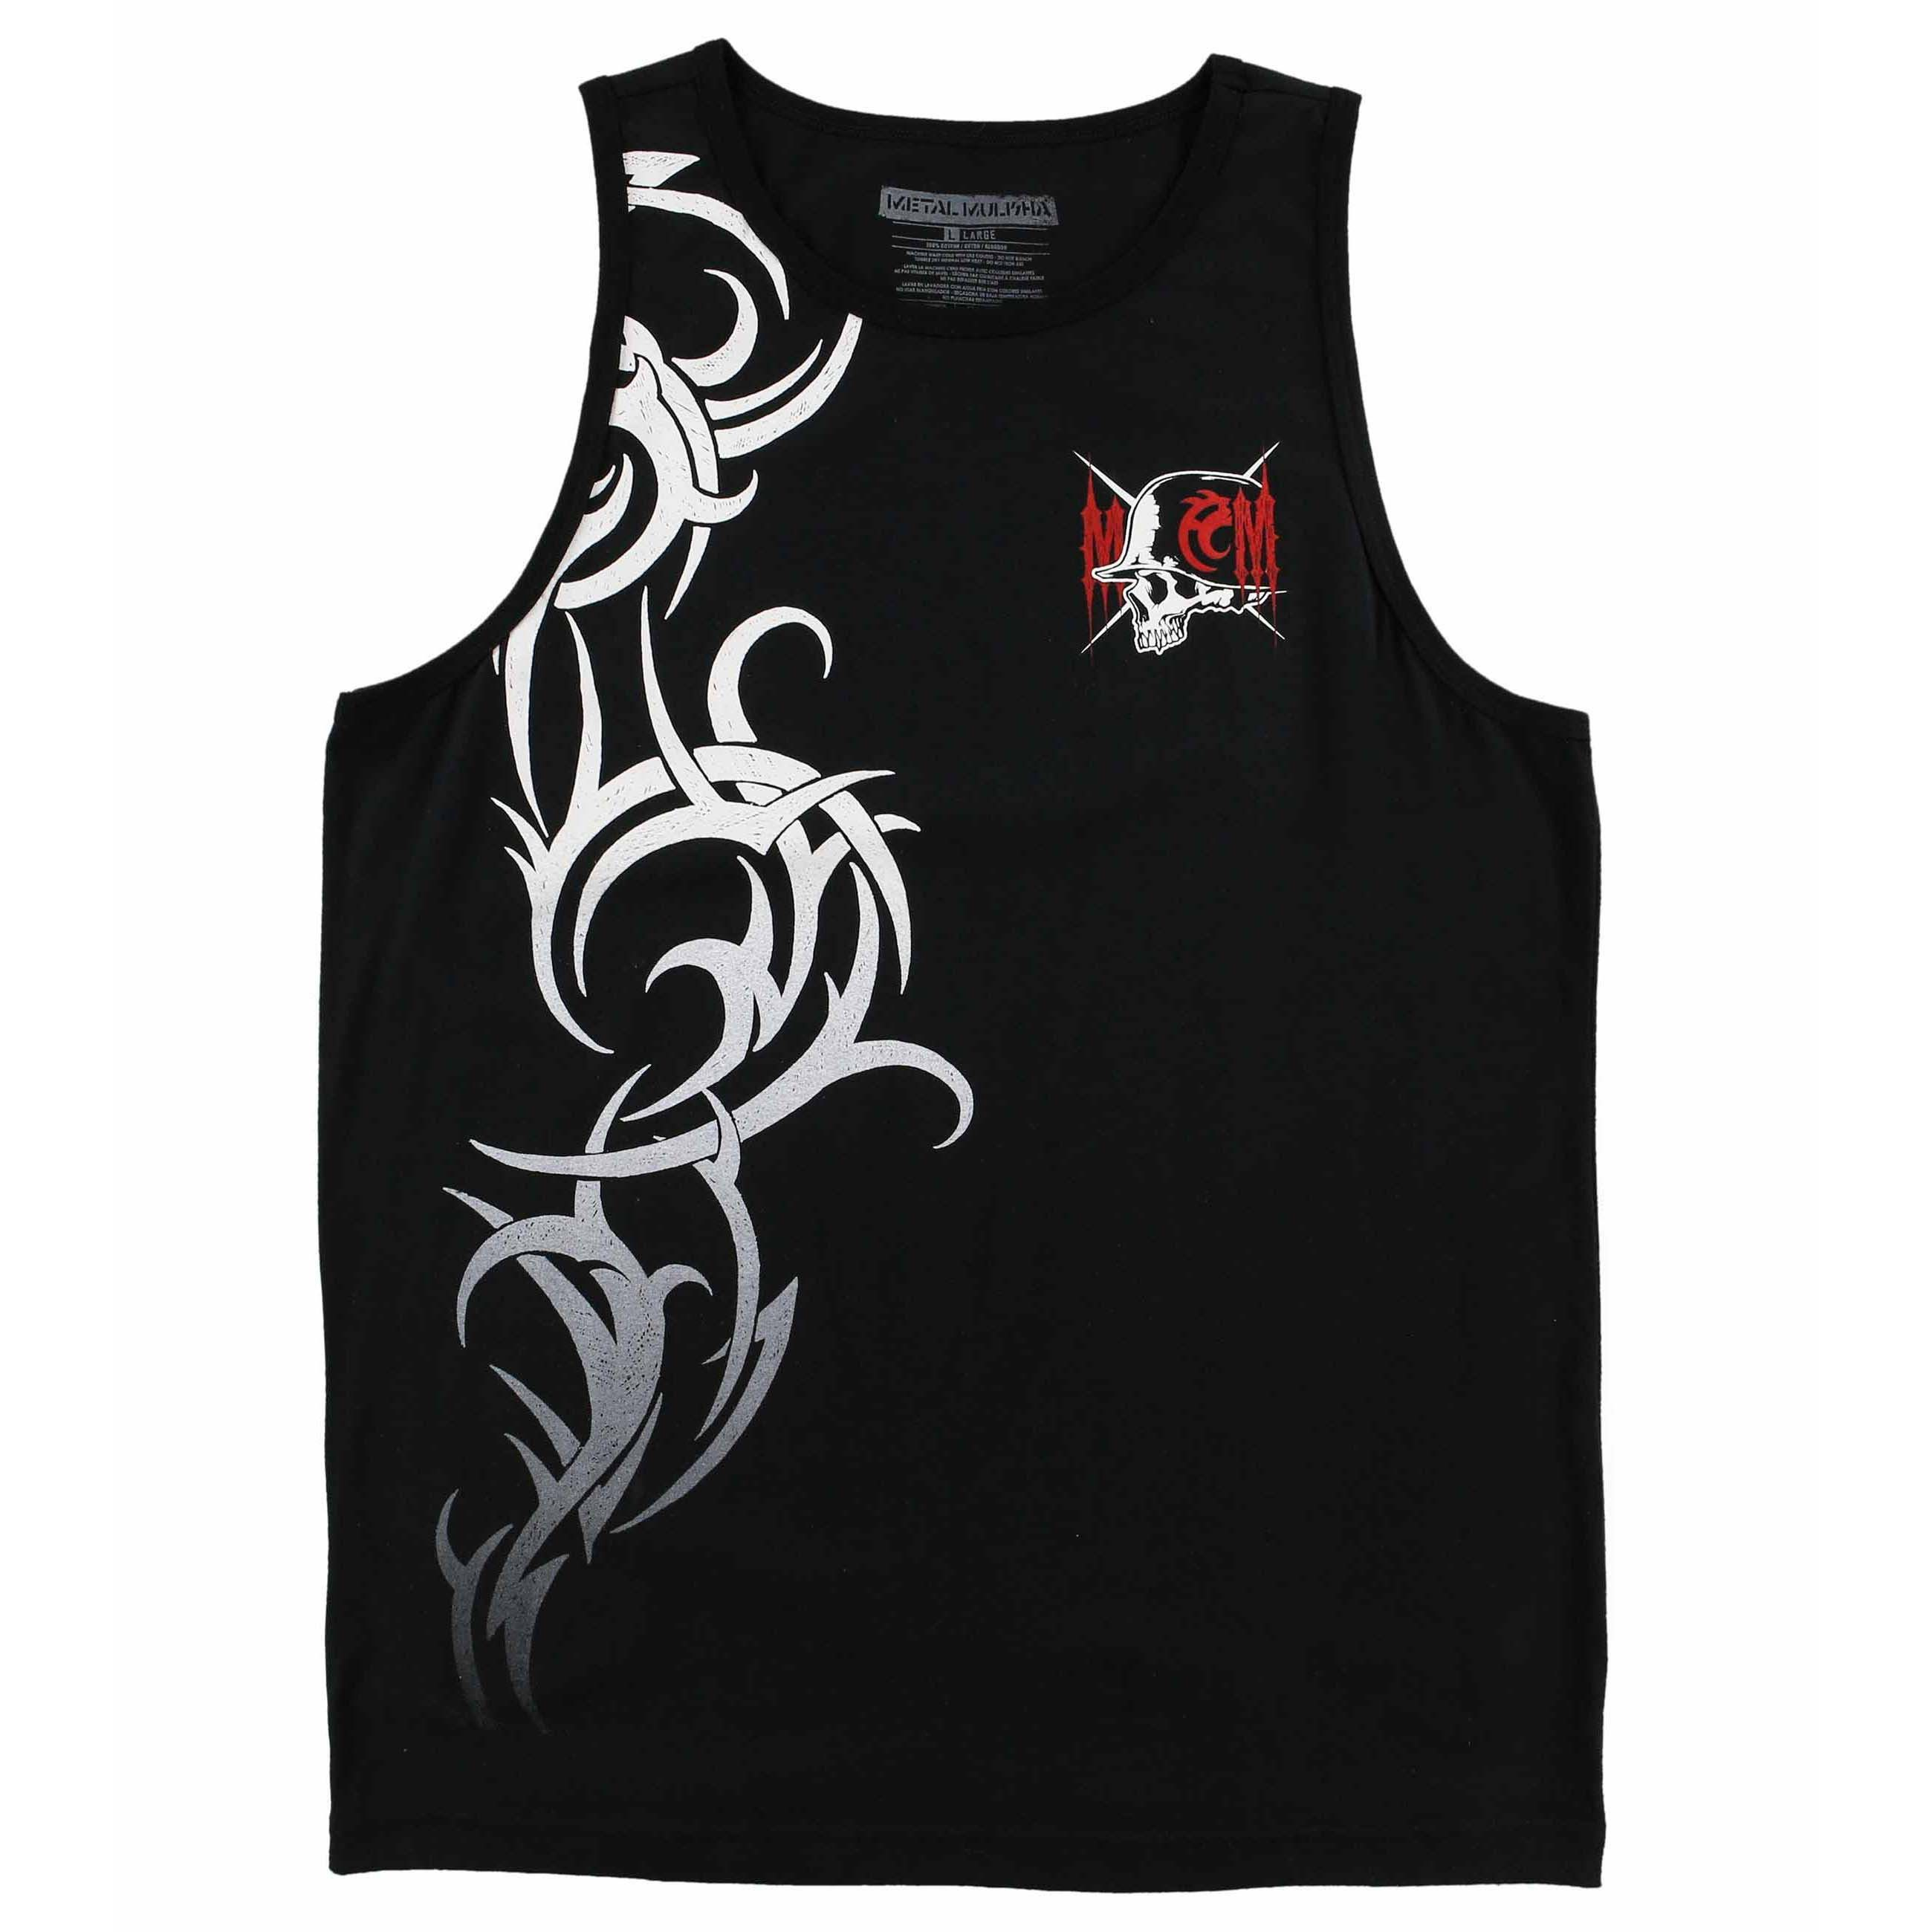 0d2f58fdd230e5 Metal Mulisha Men s Upper Cut Tank Top